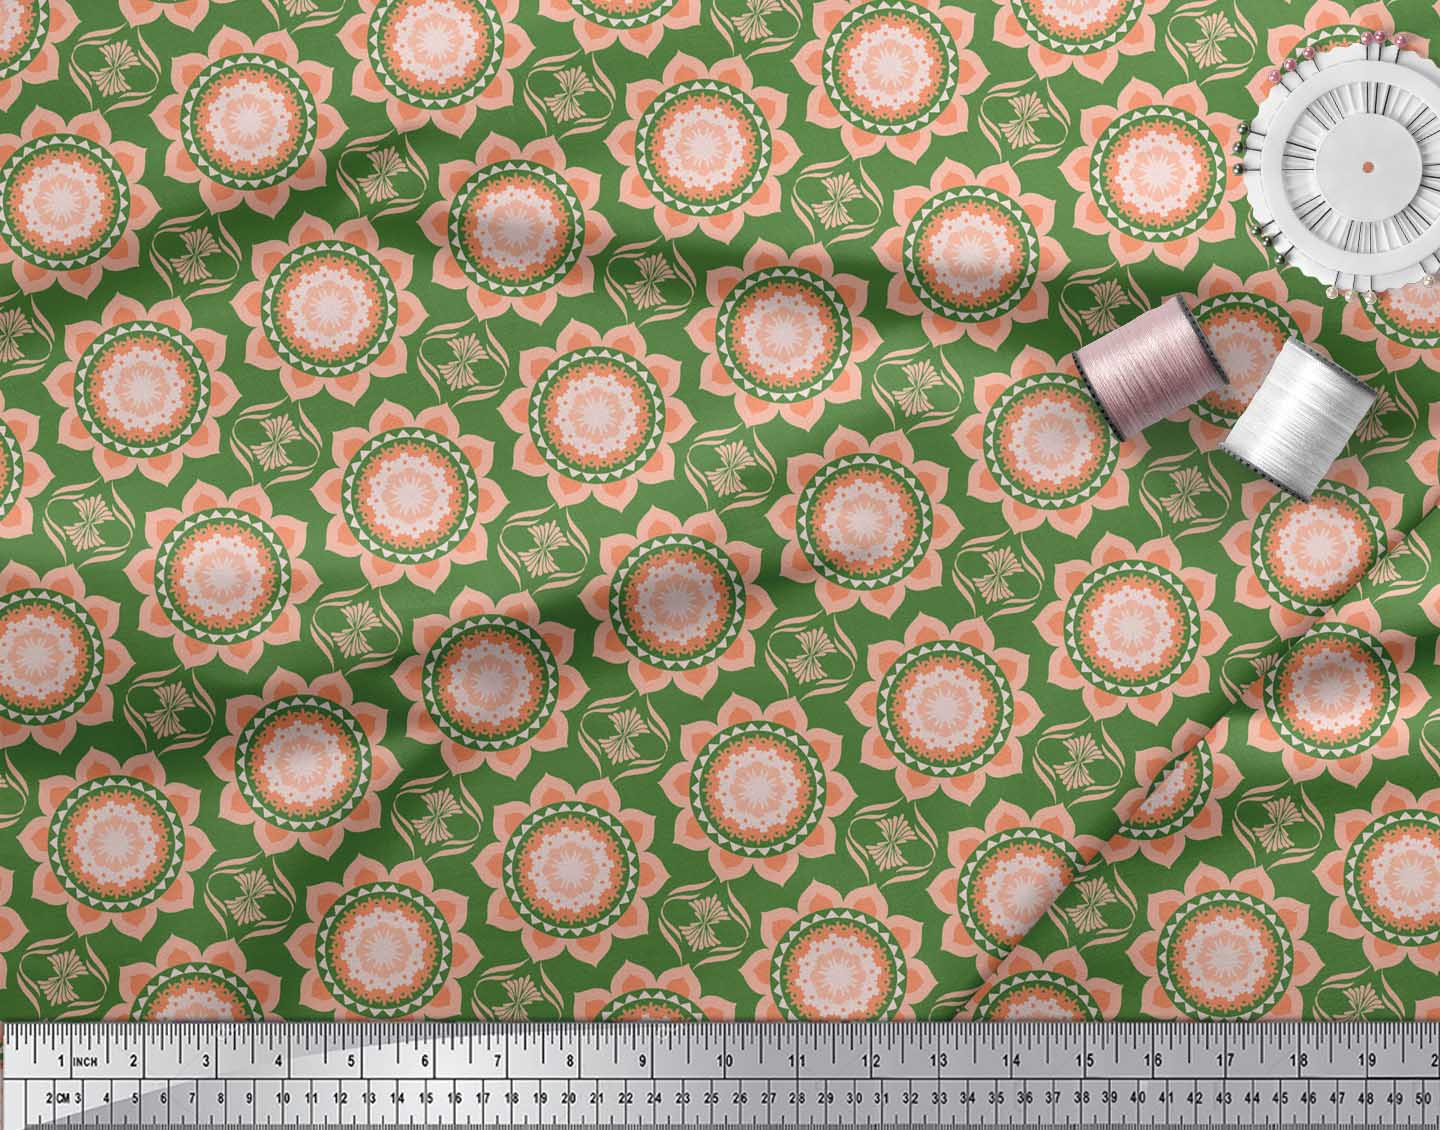 Soimoi-Green-Cotton-Poplin-Fabric-Vector-Design-Damask-Decor-Fabric-hzC thumbnail 3